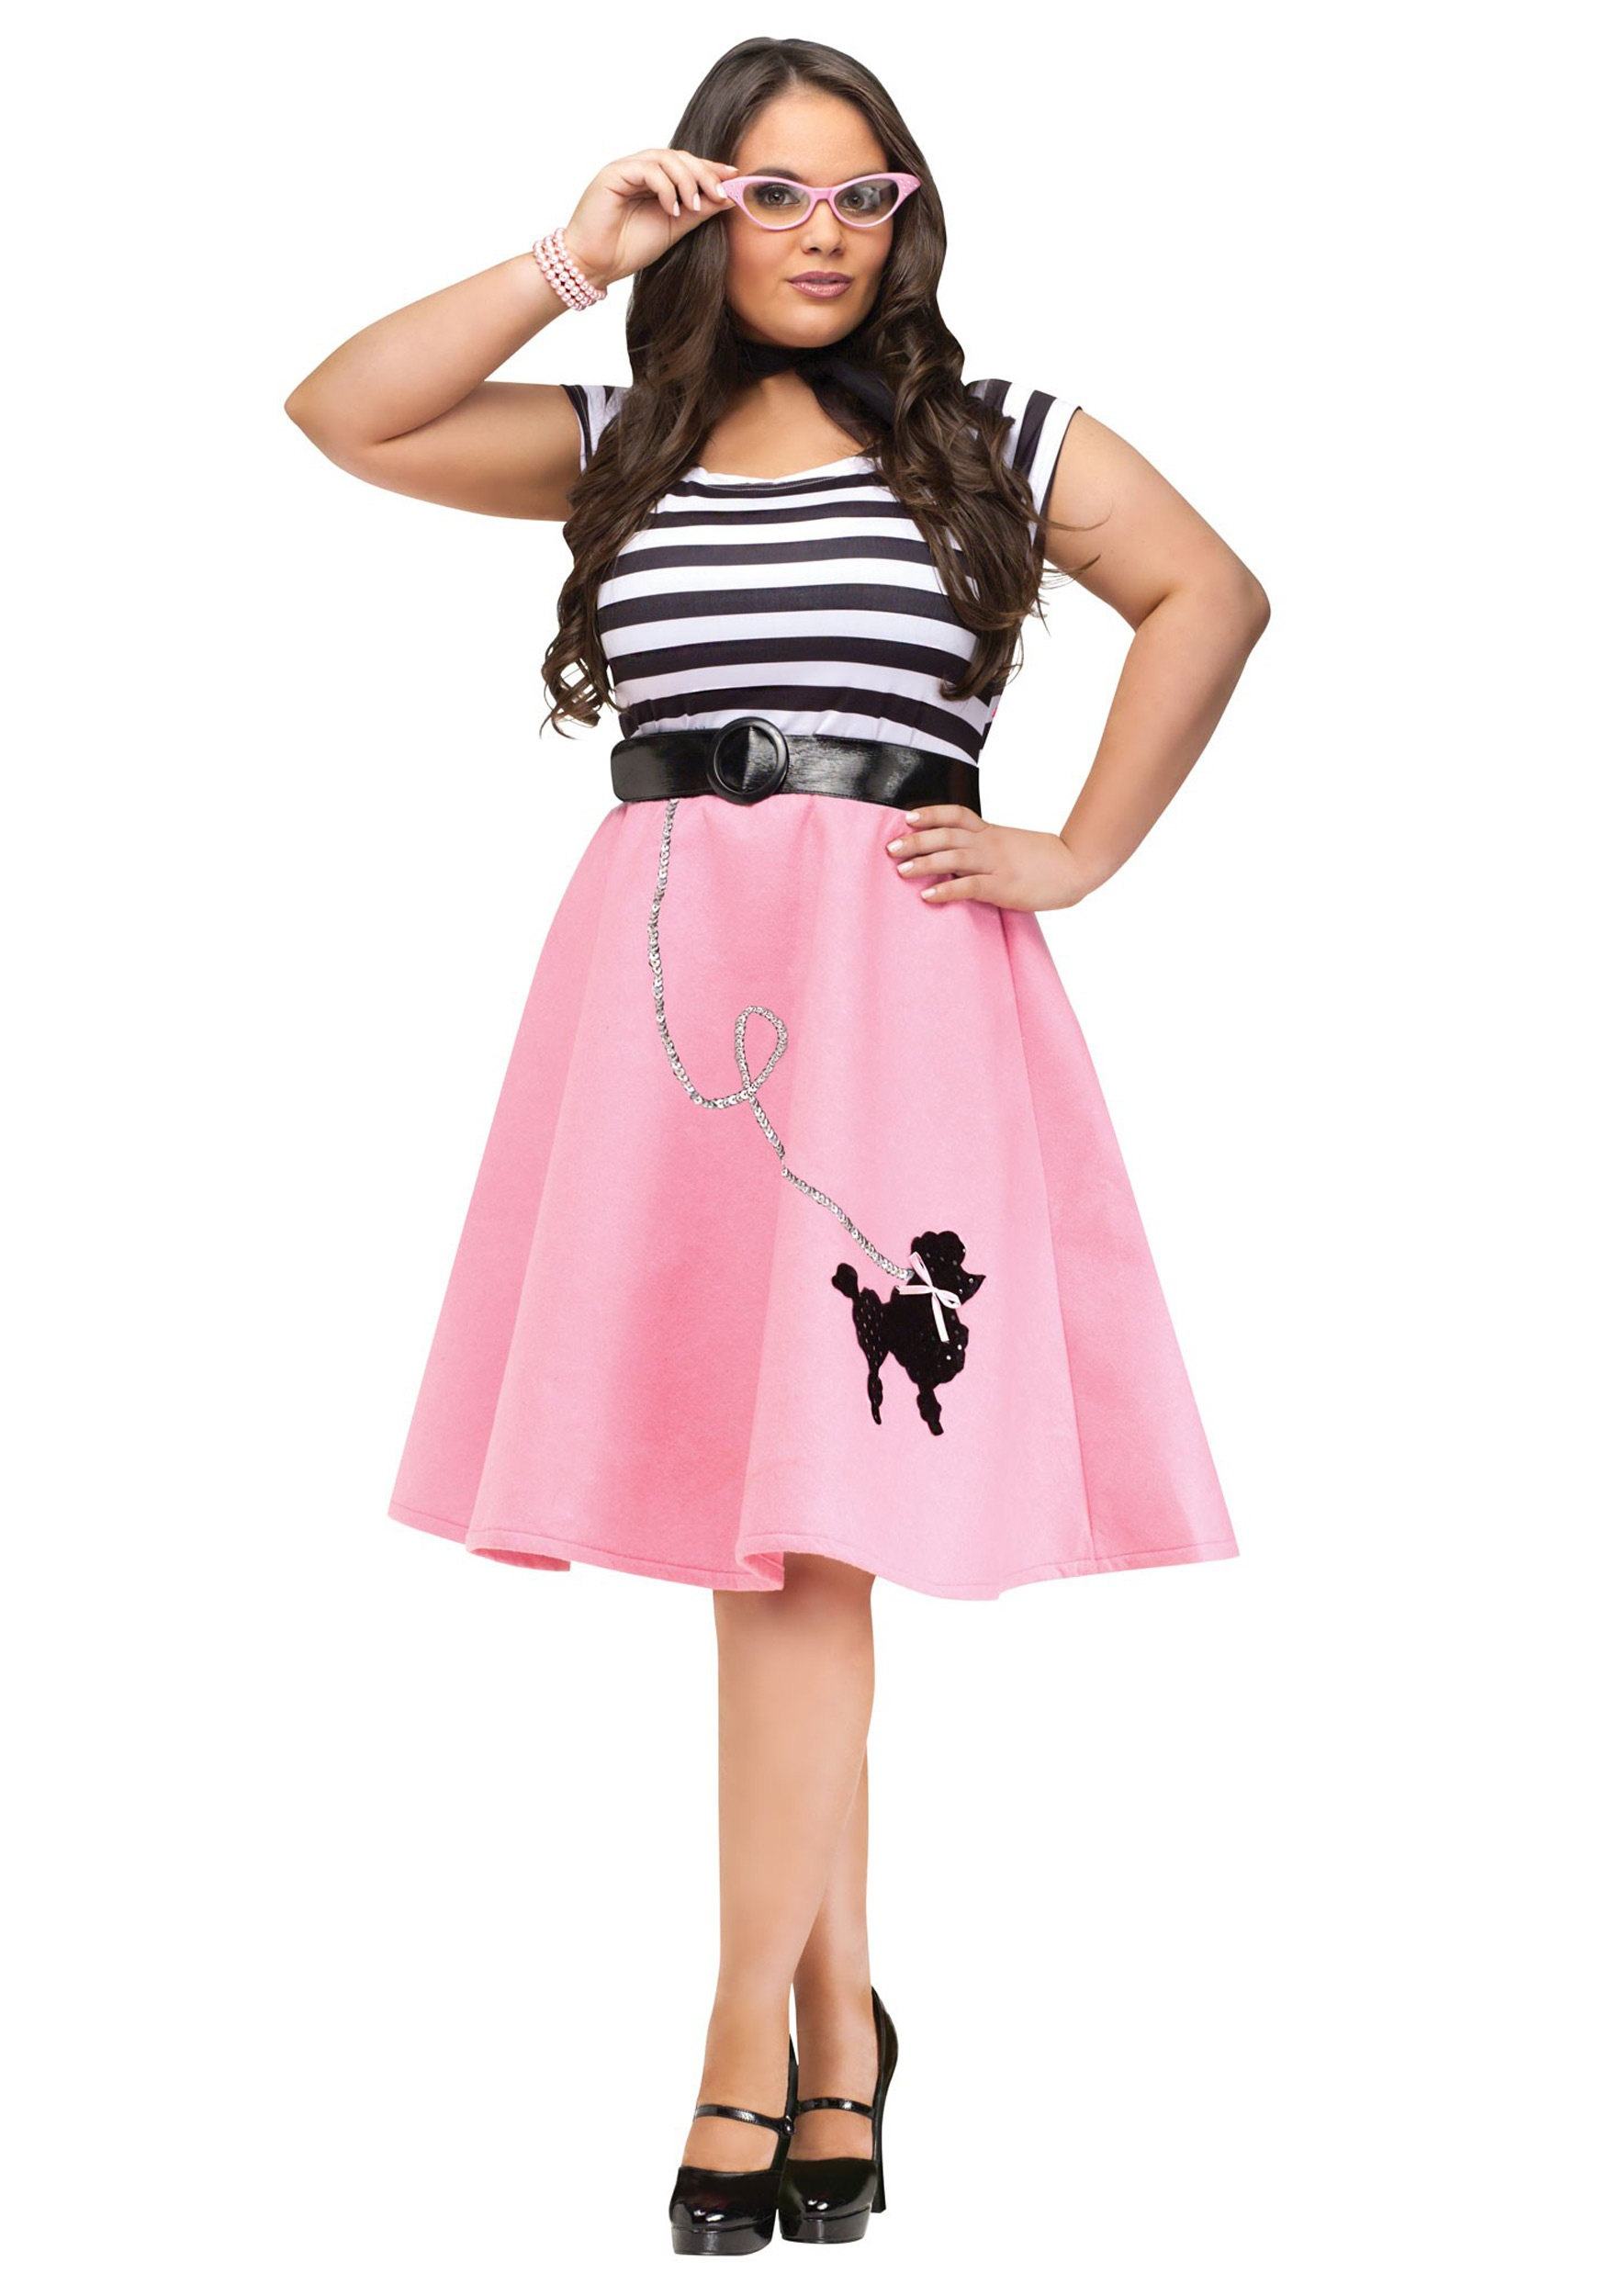 Plus Size Poodle Skirt Dress  sc 1 st  Halloween Costumes & Plus Size Poodle Skirt Dress 1X 2X 3X